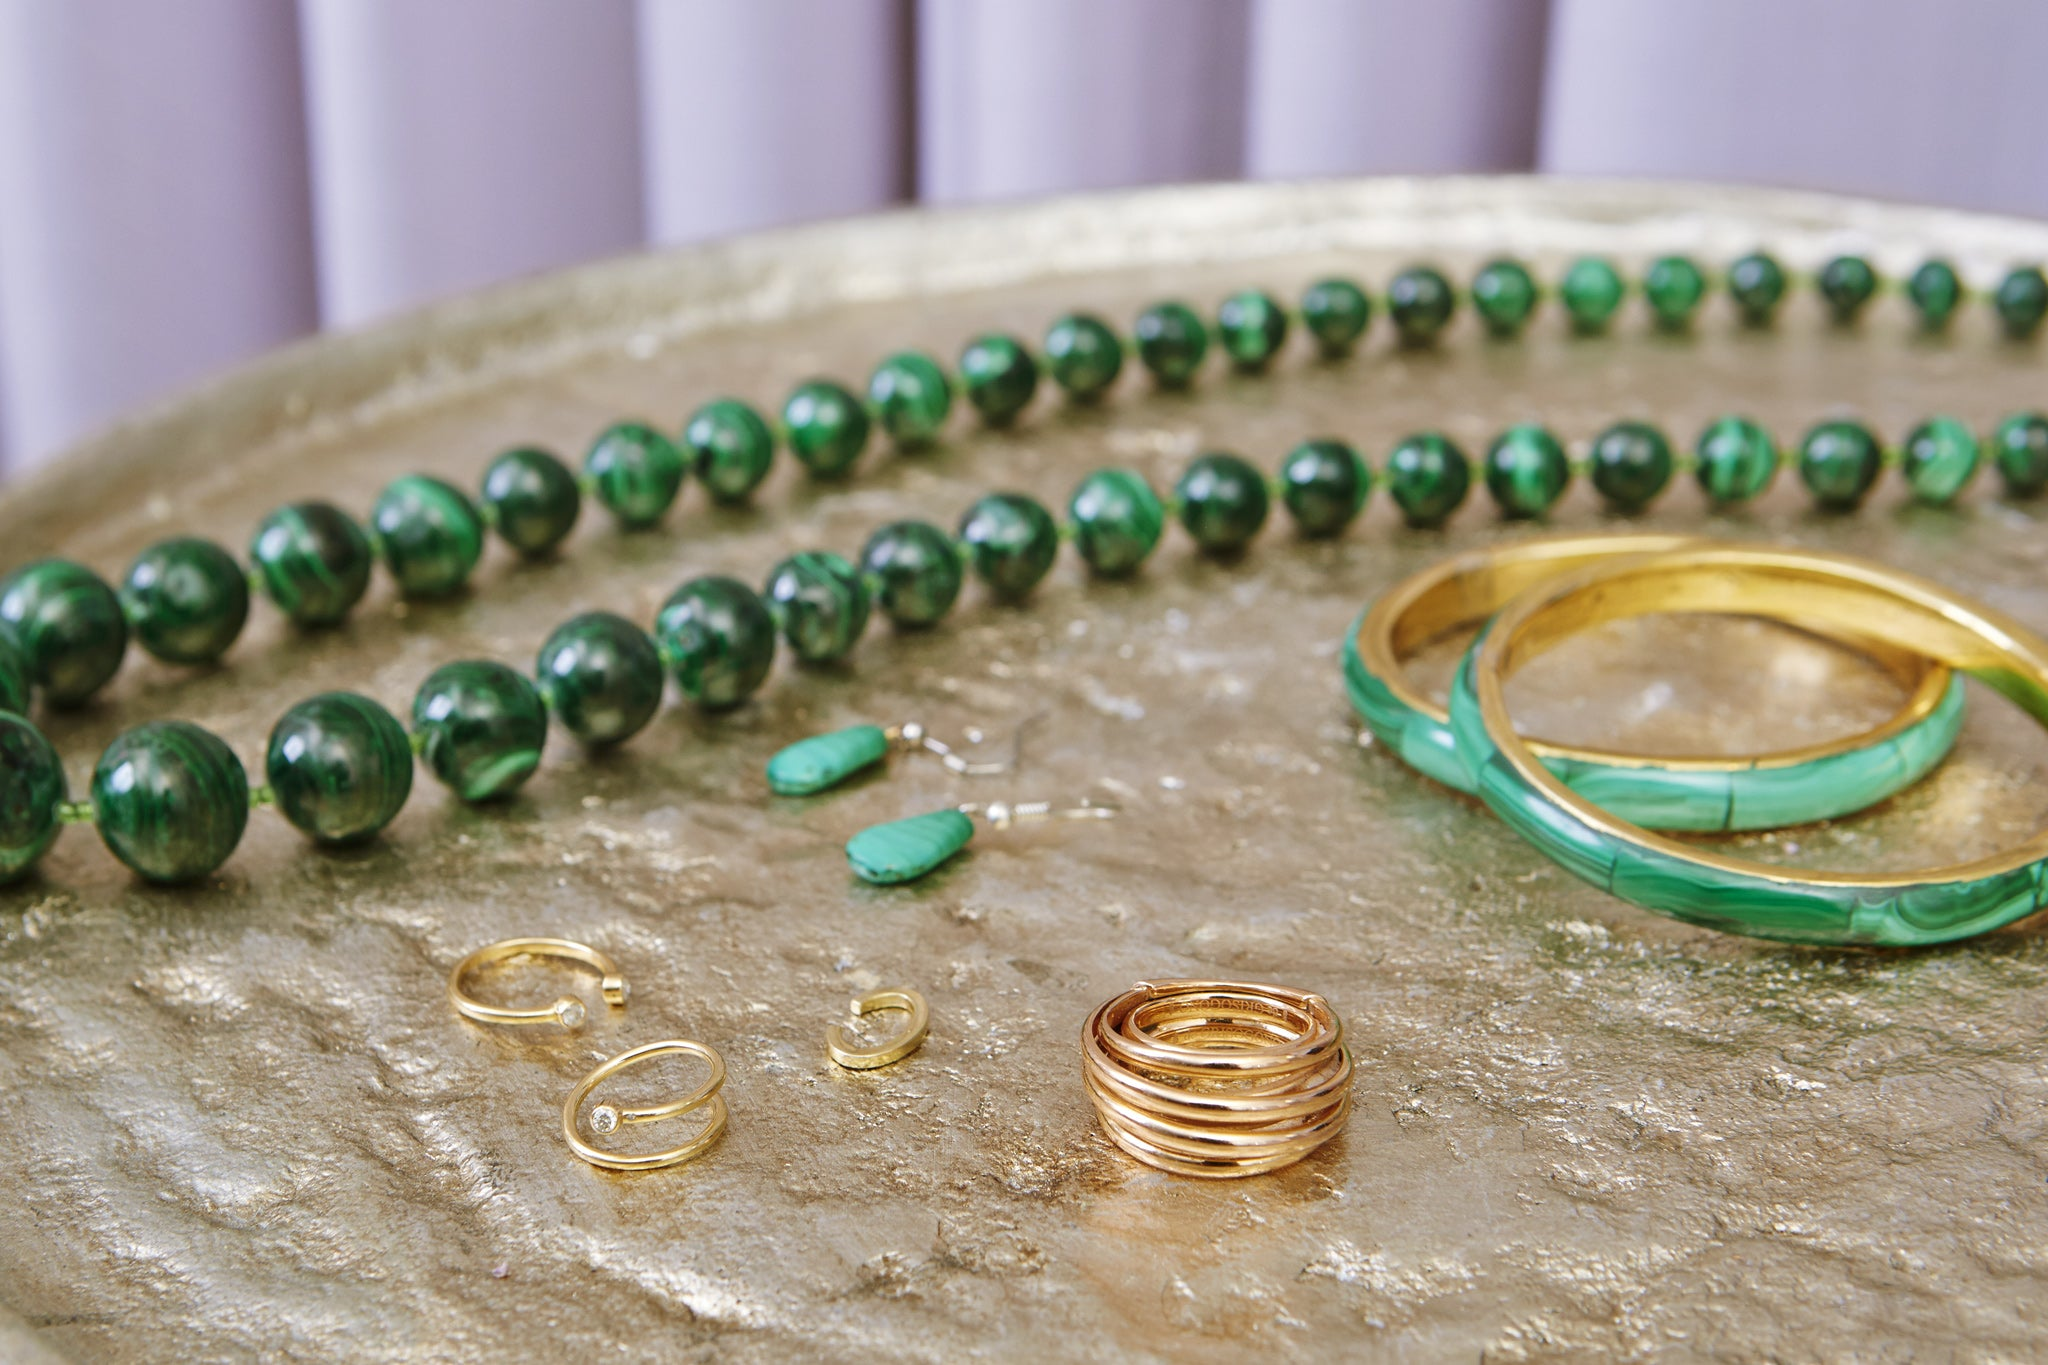 green malachite jewelry from the democratic republic of the congo and shiffon pinky ring on gold table